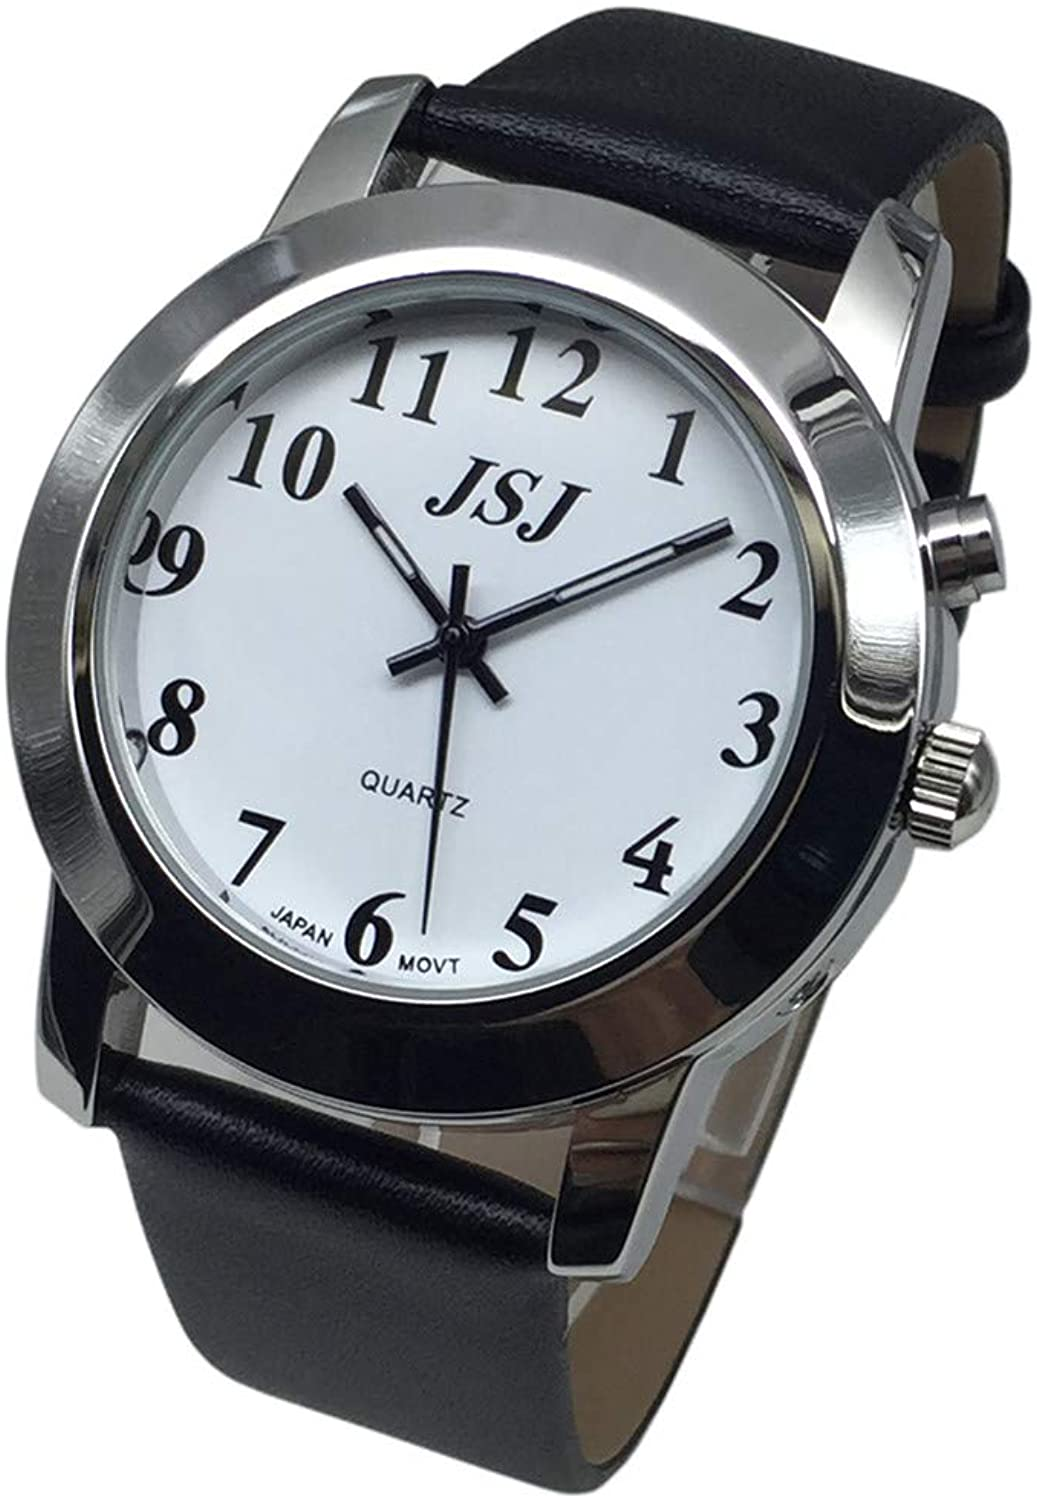 English Talking Quartz Watch with Leather Strap,T...